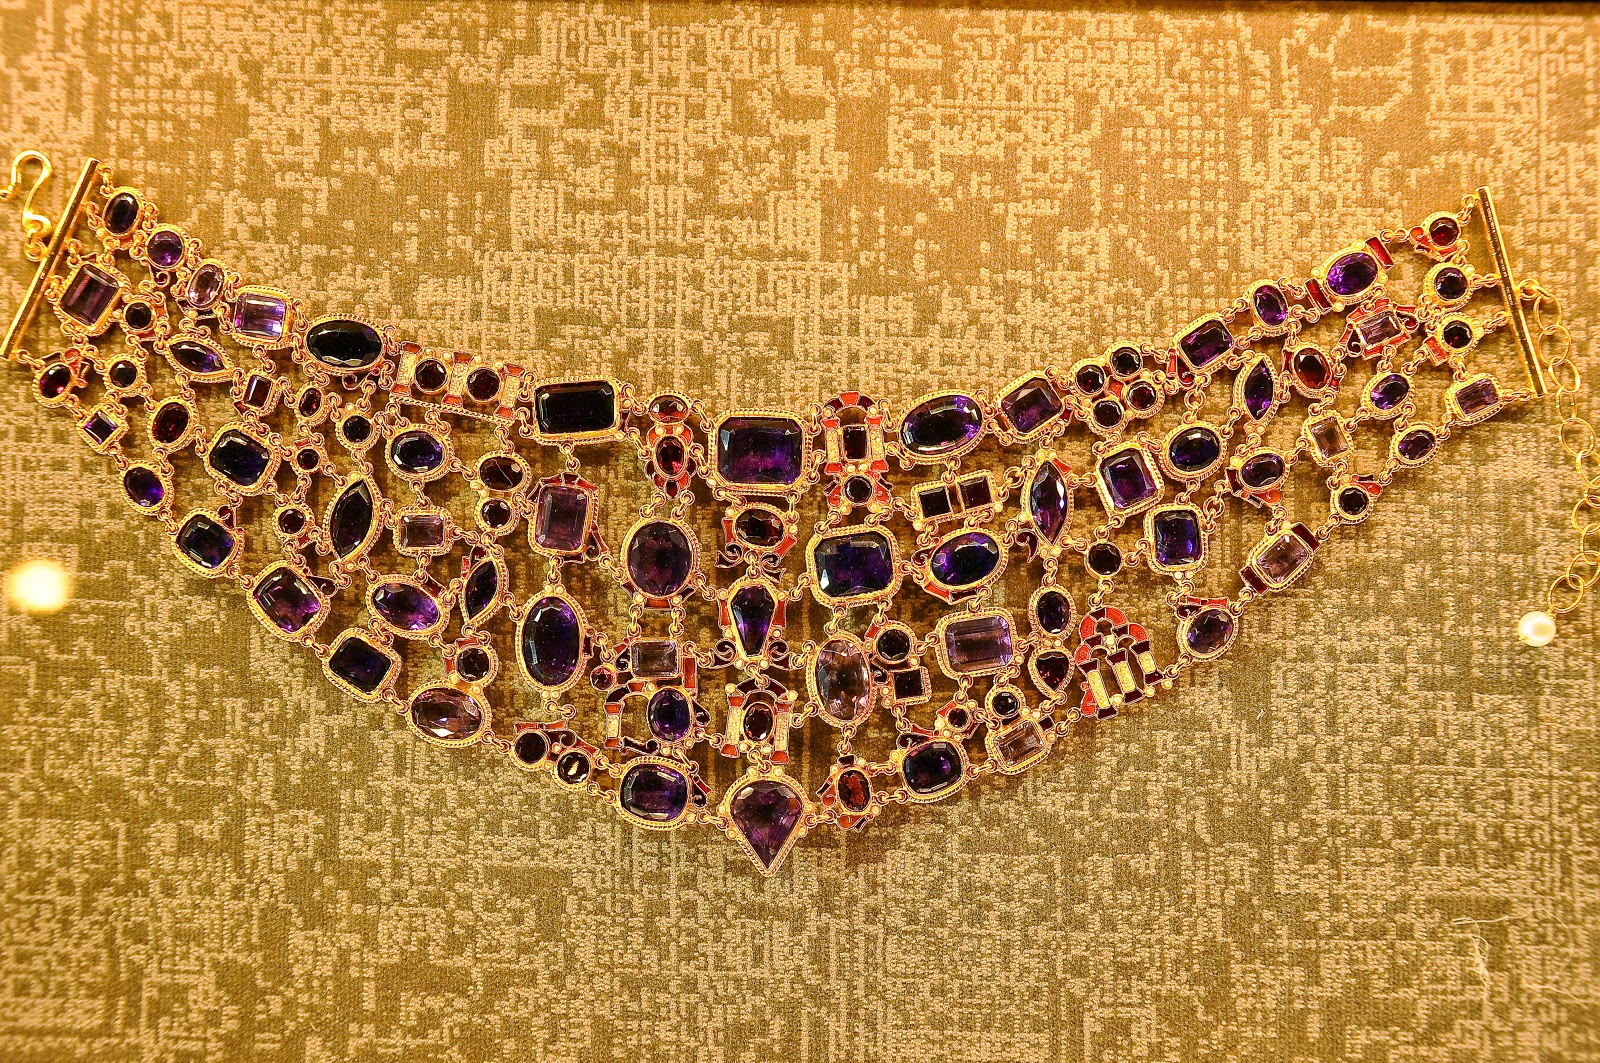 An amethyst and gold necklace in the Beauty room in the Museum of the Jewellery in Vicenza